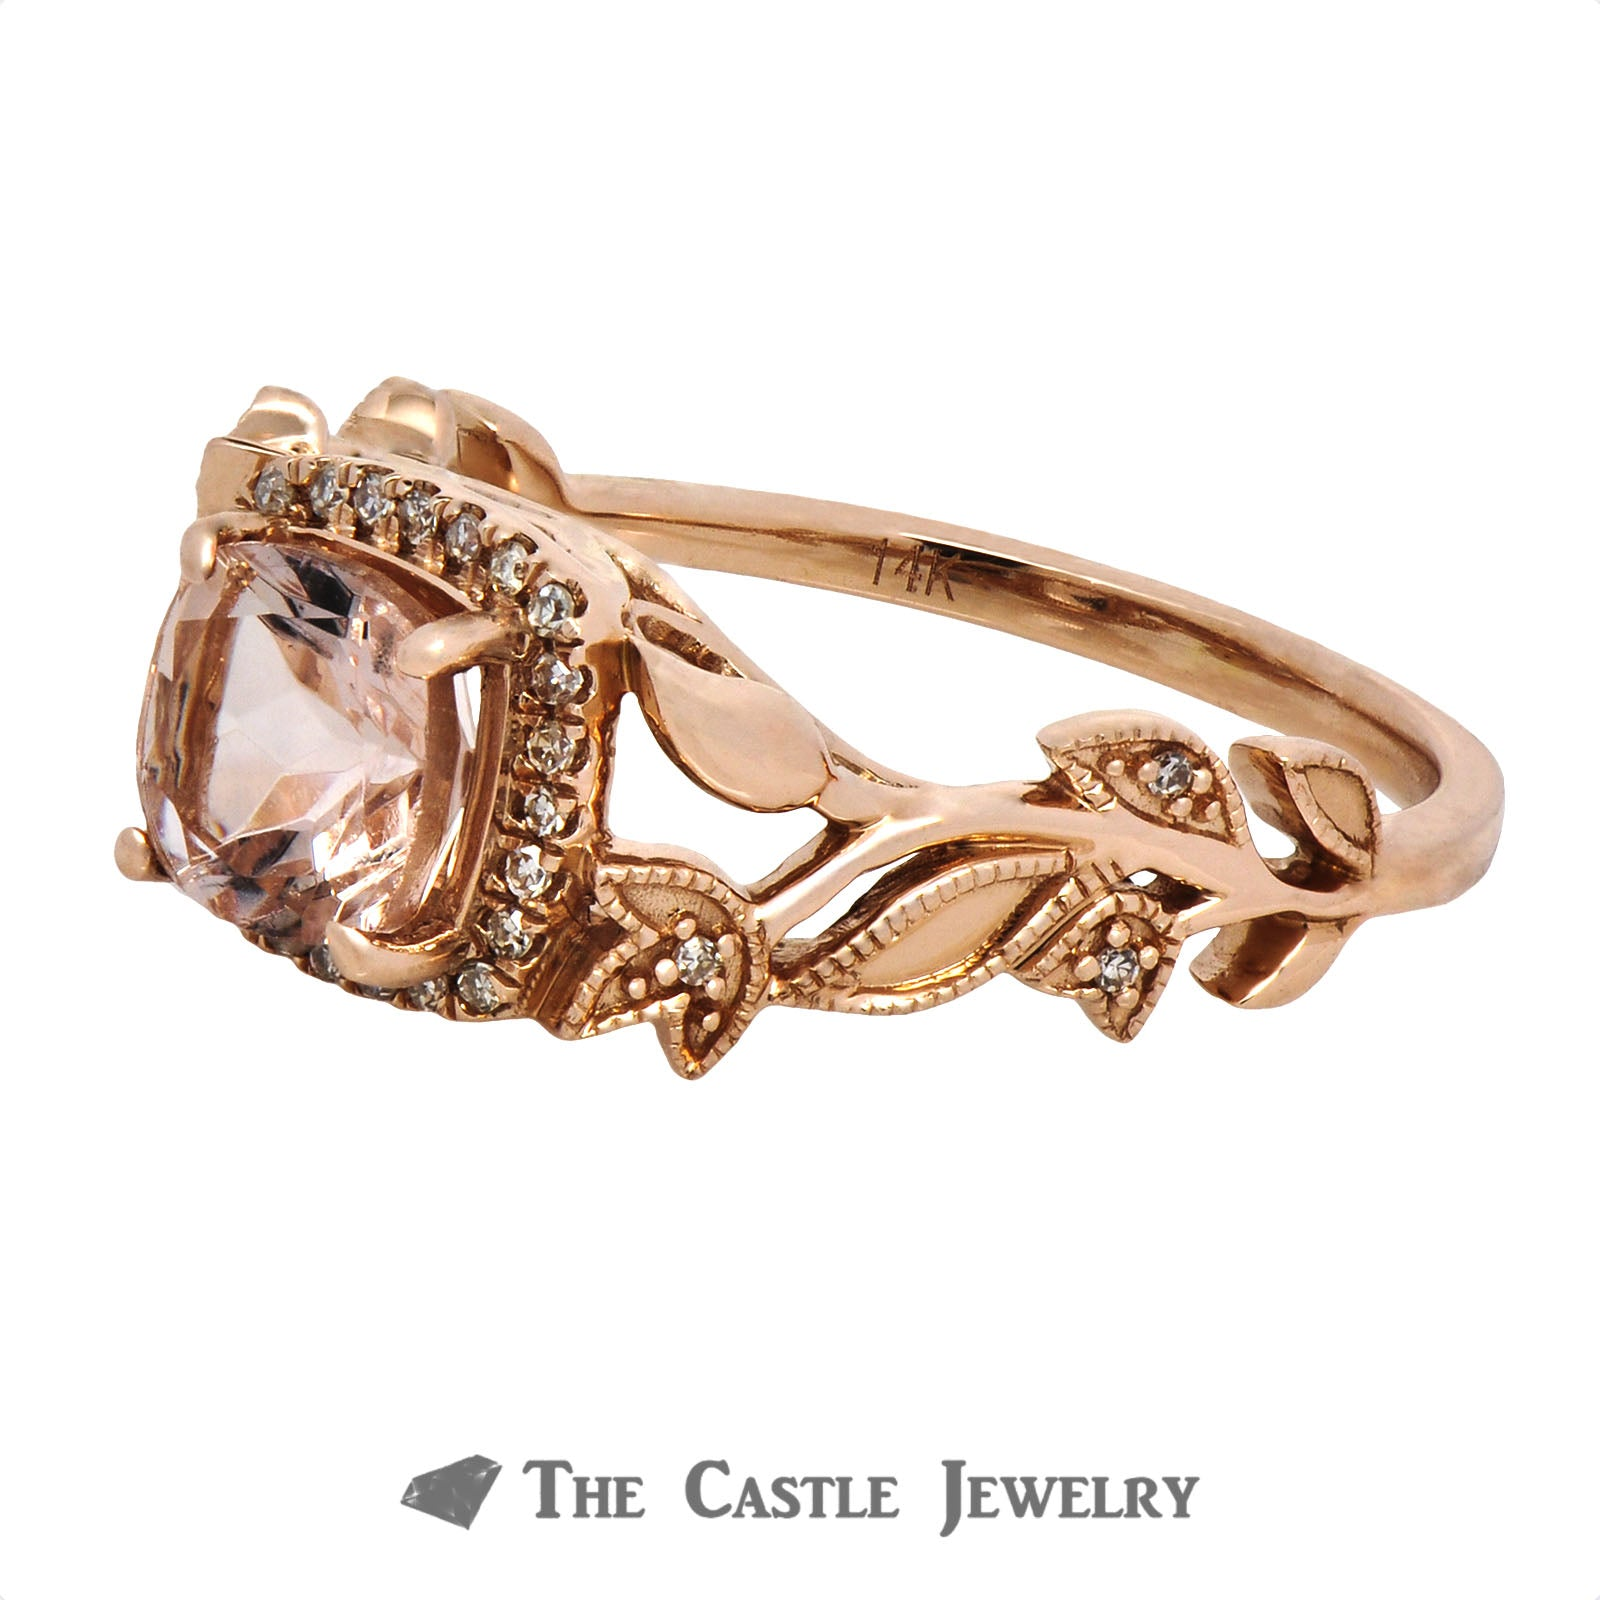 Cushion Cut Morganite Ring with Diamond Halo & Flower Design Rose Gold Mounting-2